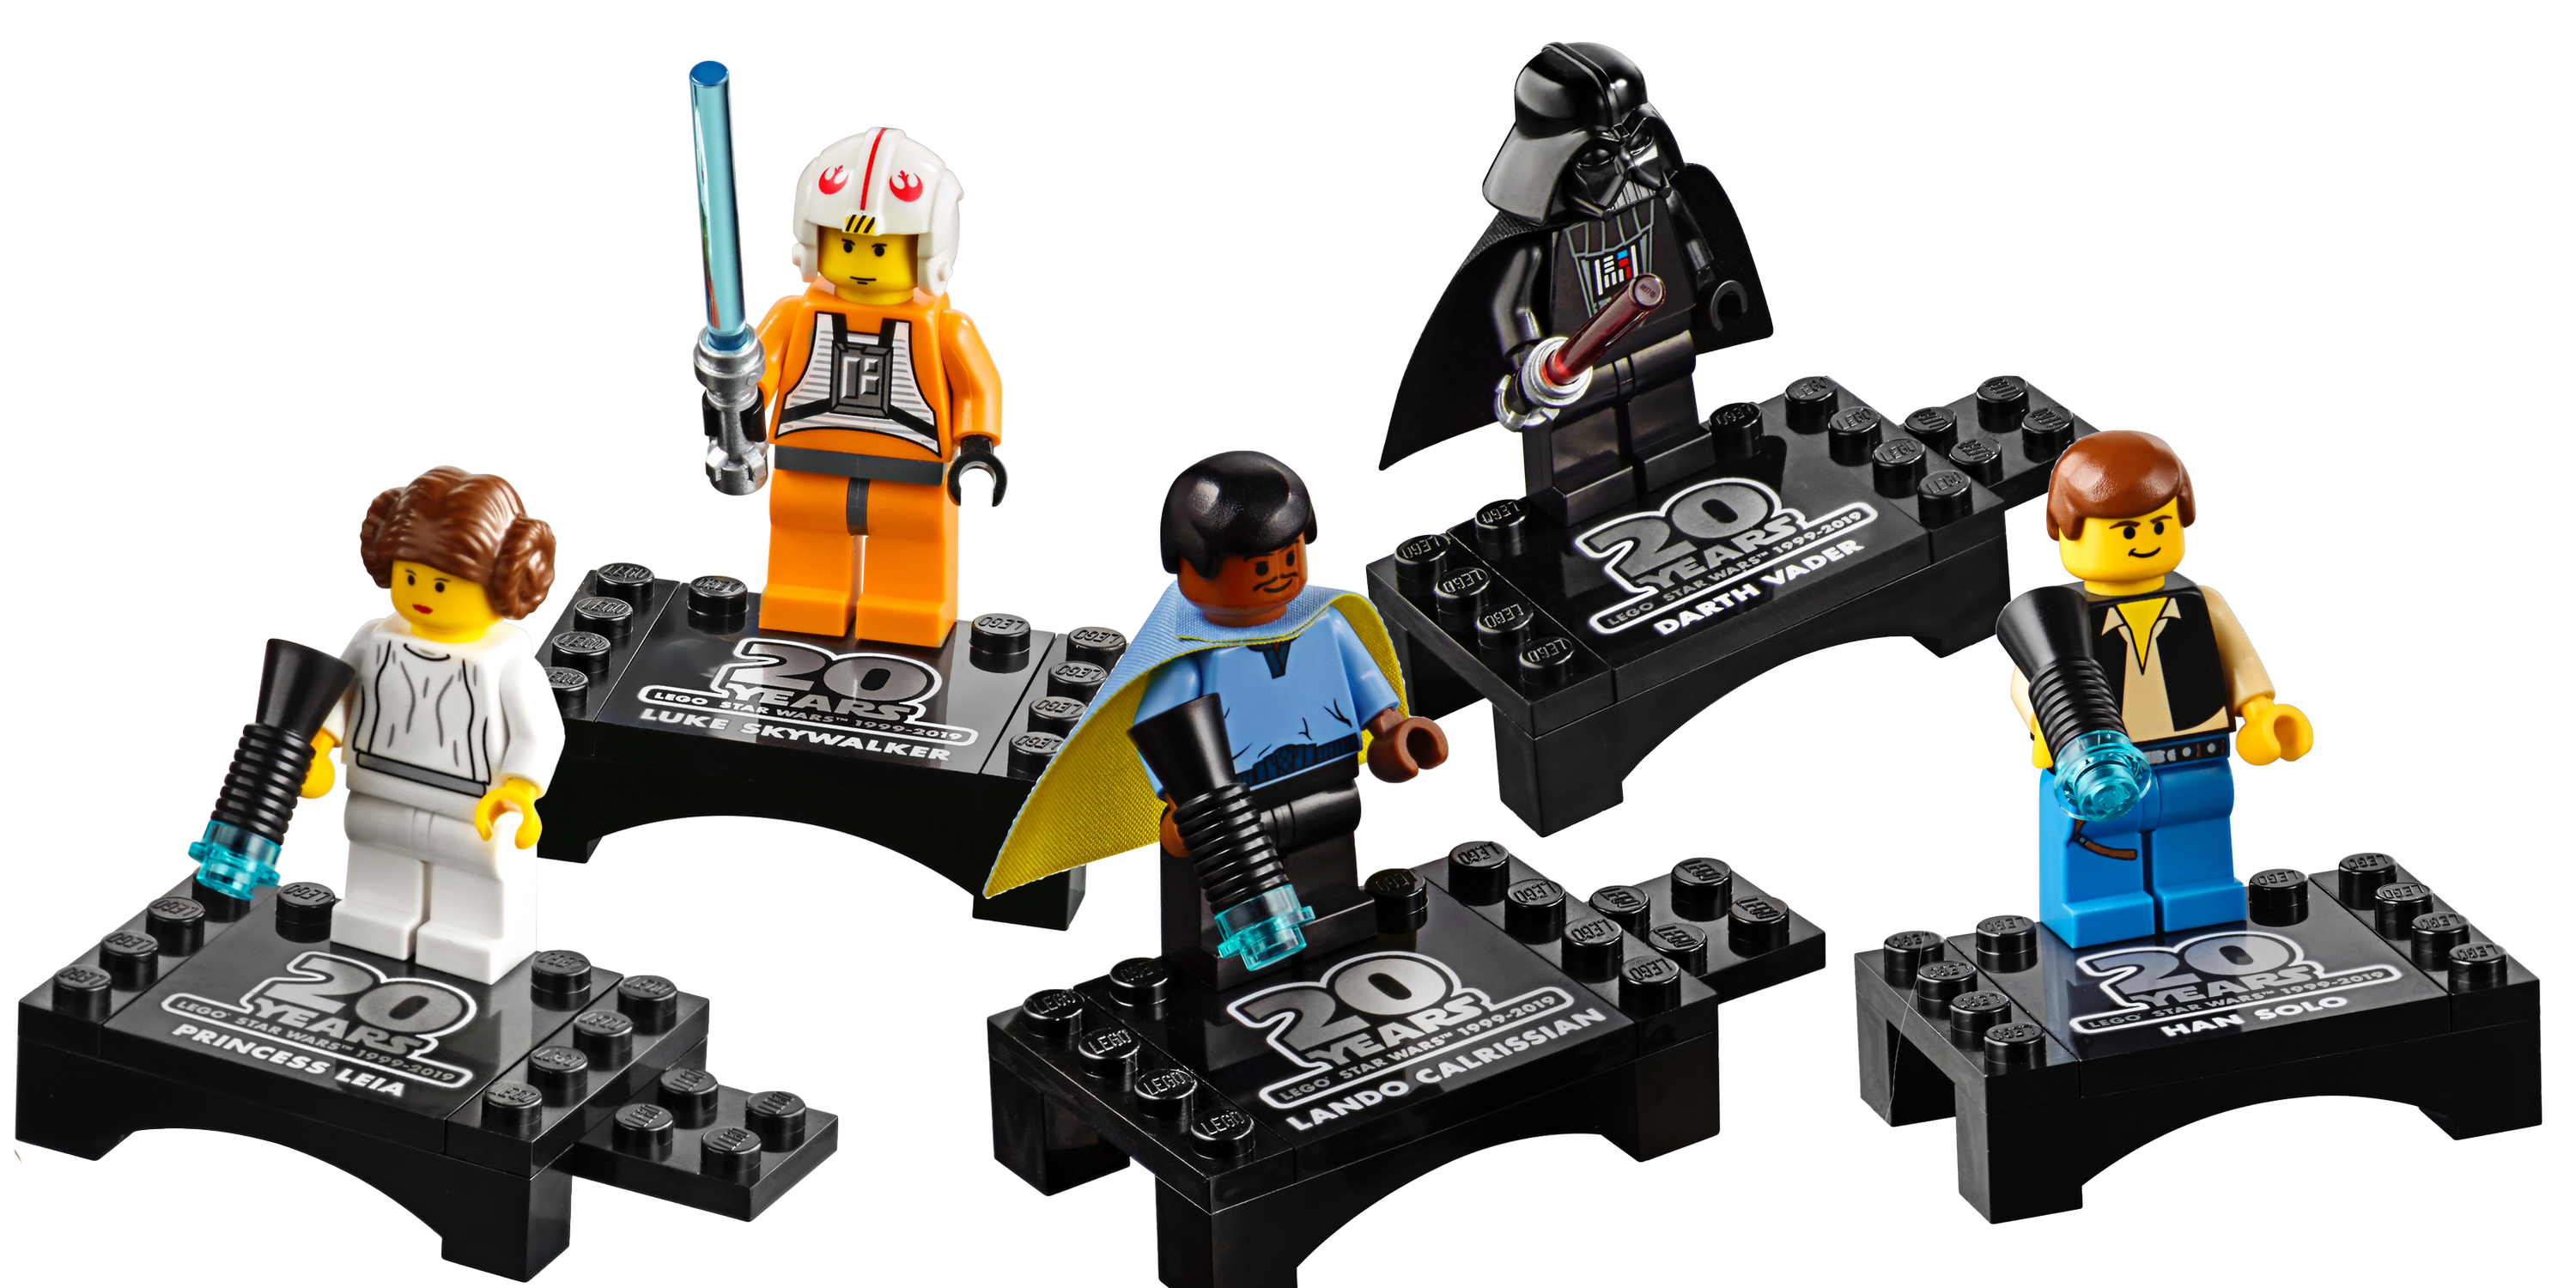 Take A Look At Five New Lego Star Wars 20th Anniversary Sets 9to5toys